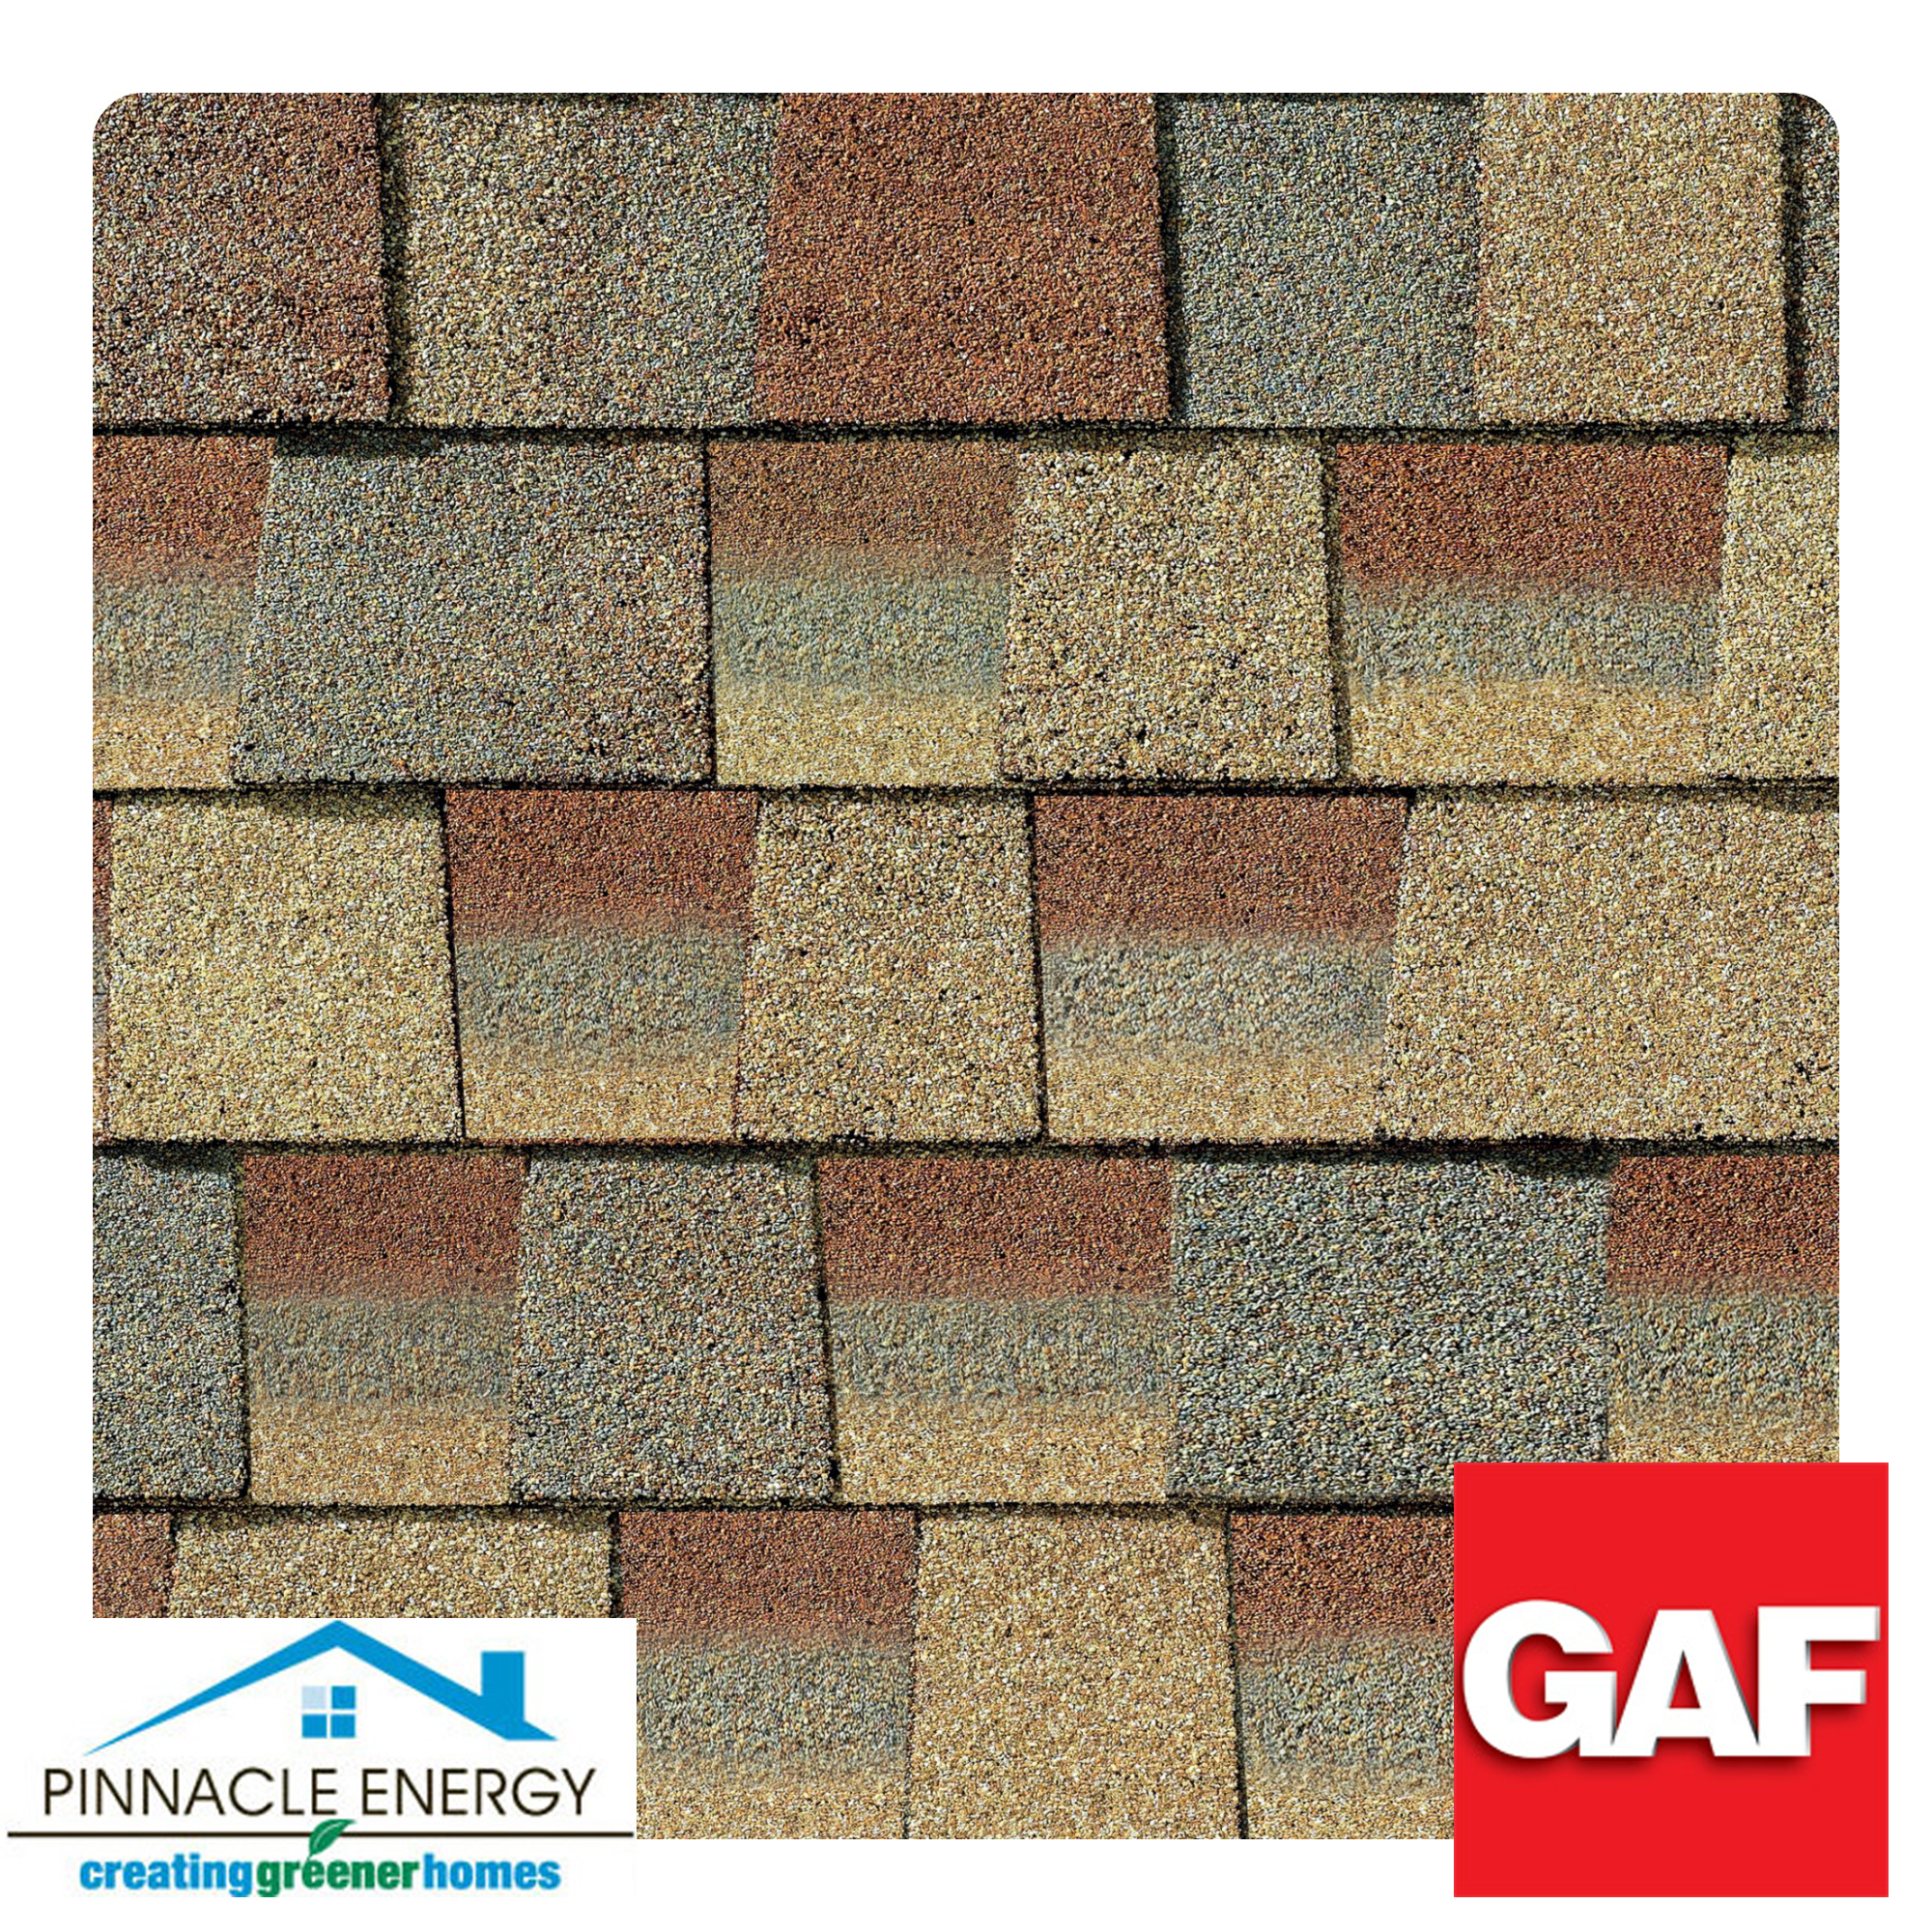 Copper Canyon Dura Grip Adhesive Seals Each Shingle Tightly And Reduces The Risk Of Shingle Blow Architectural Shingles Roof Roof Architecture Copper Canyon